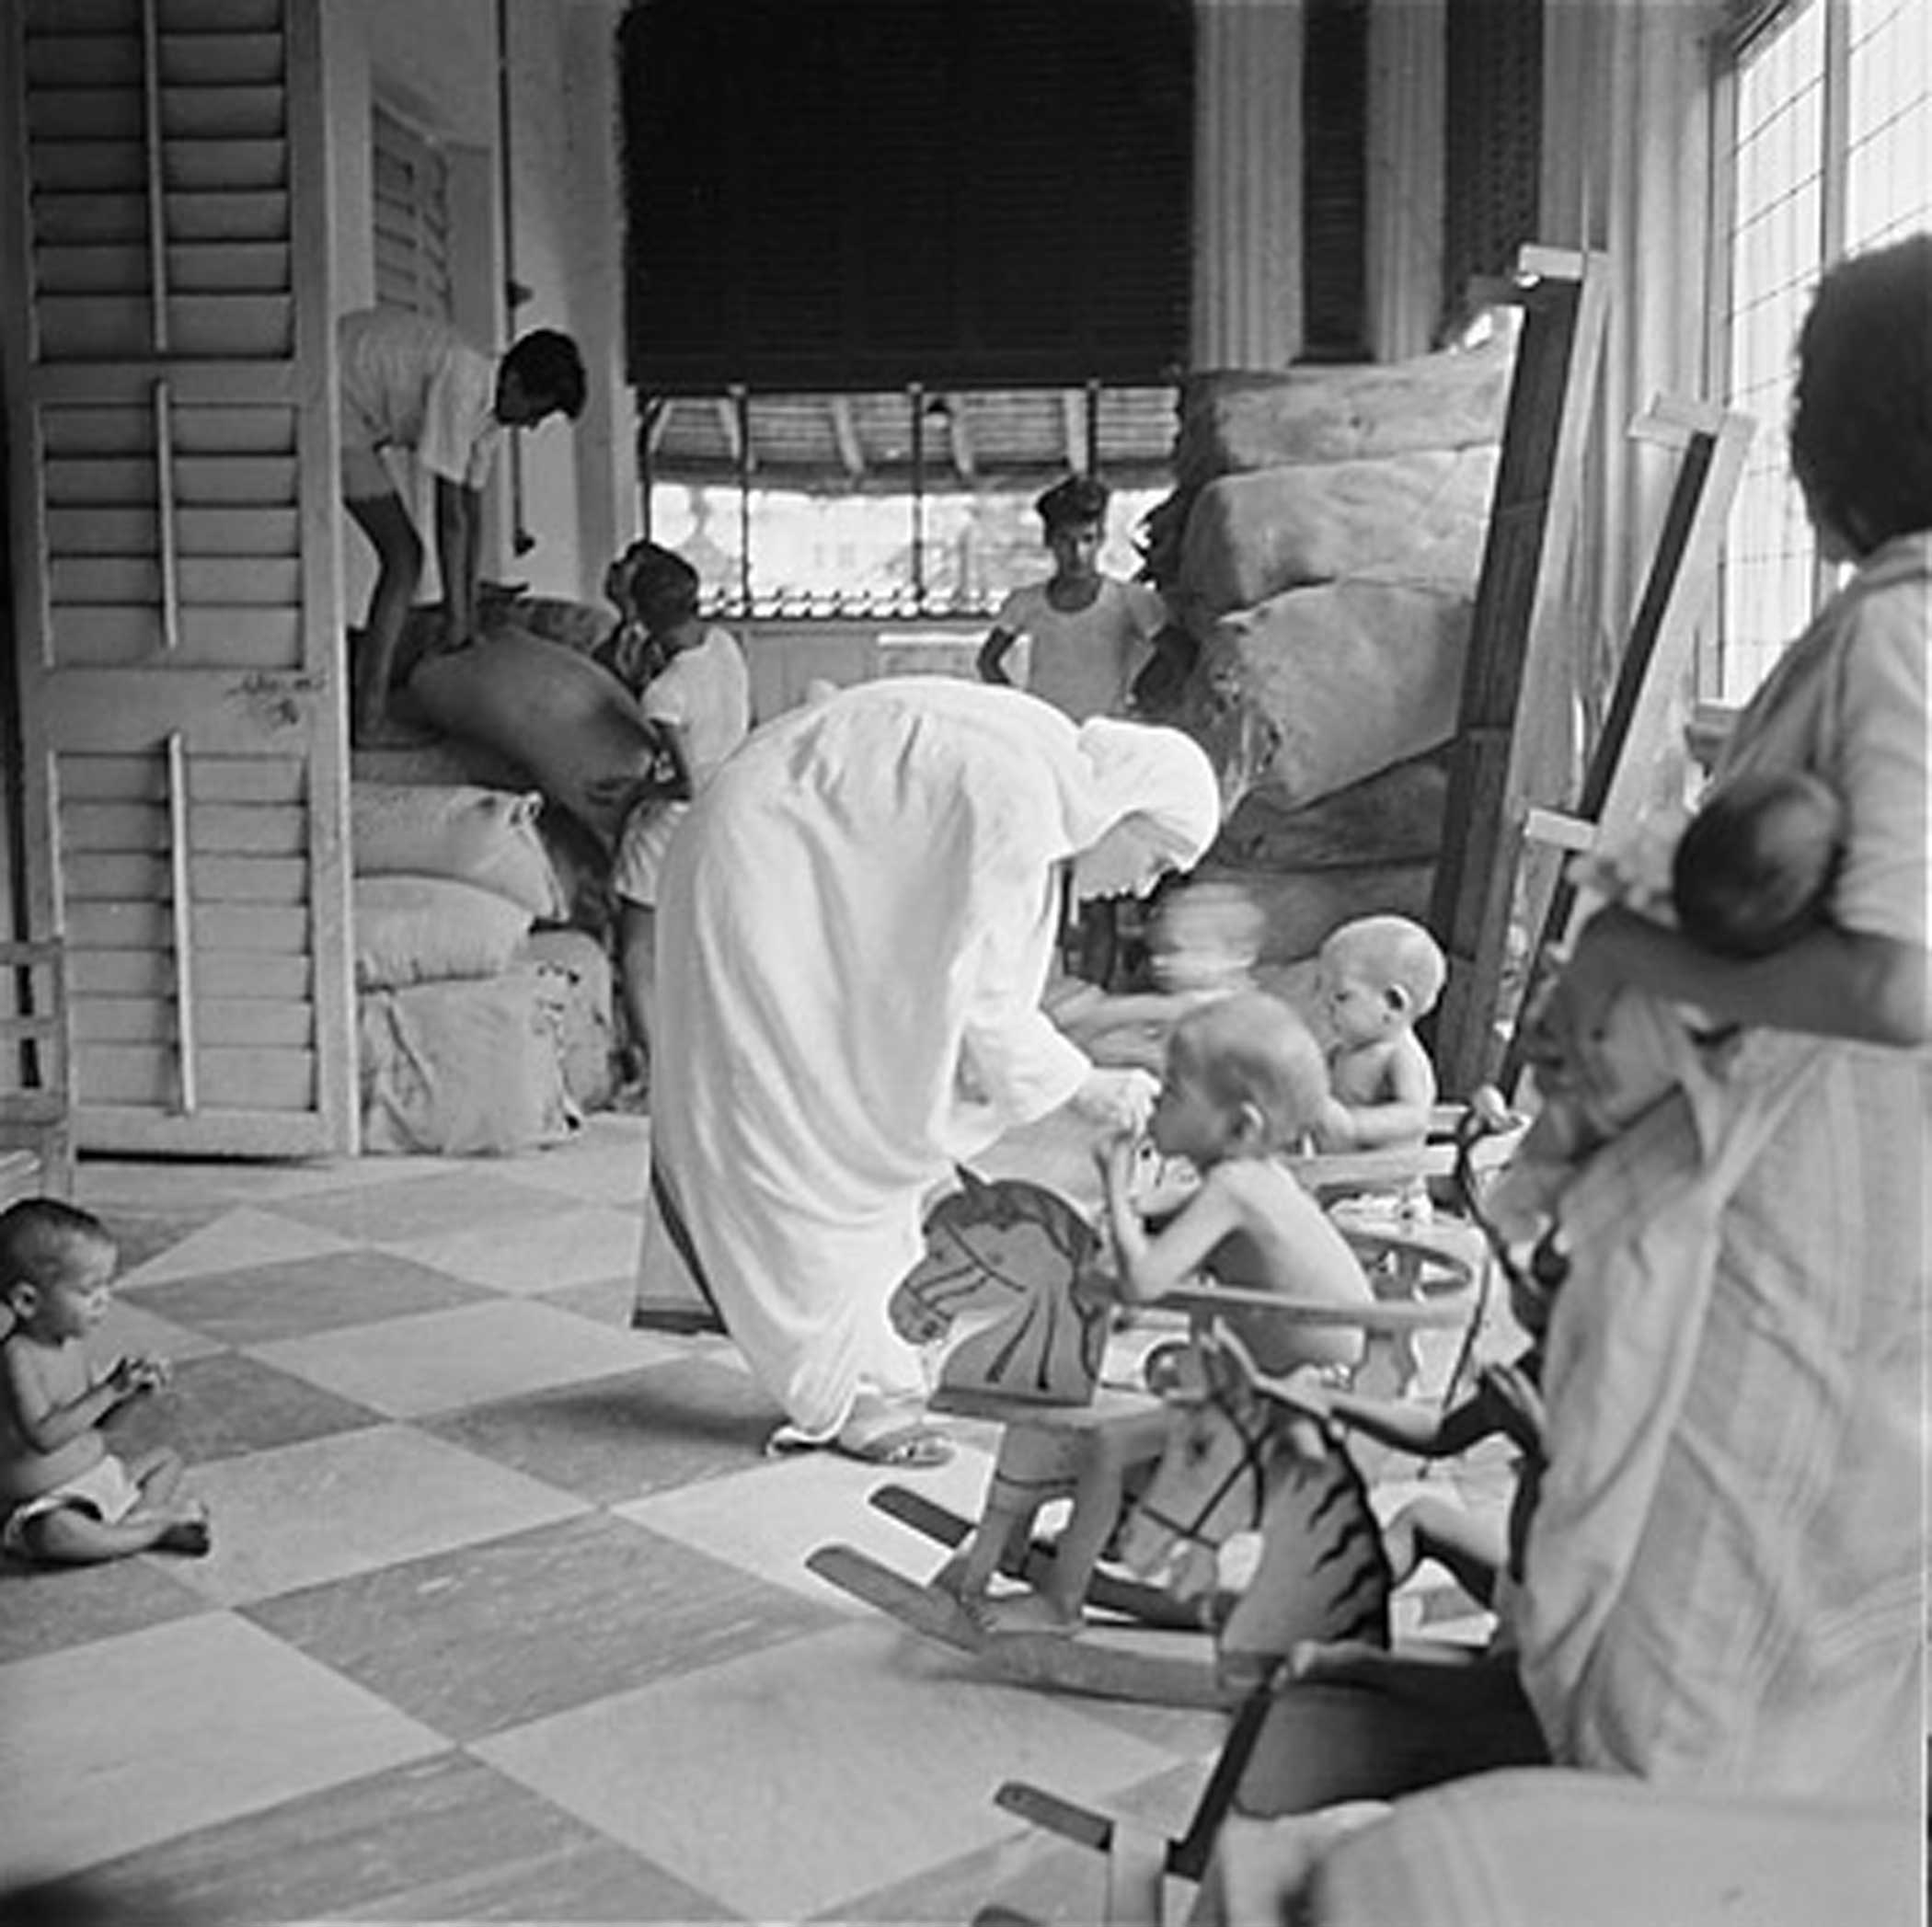 In 1957, when these photos were taken, Teresa was little known outside the circle of Calcutta homeless who found refuge in her ministry.